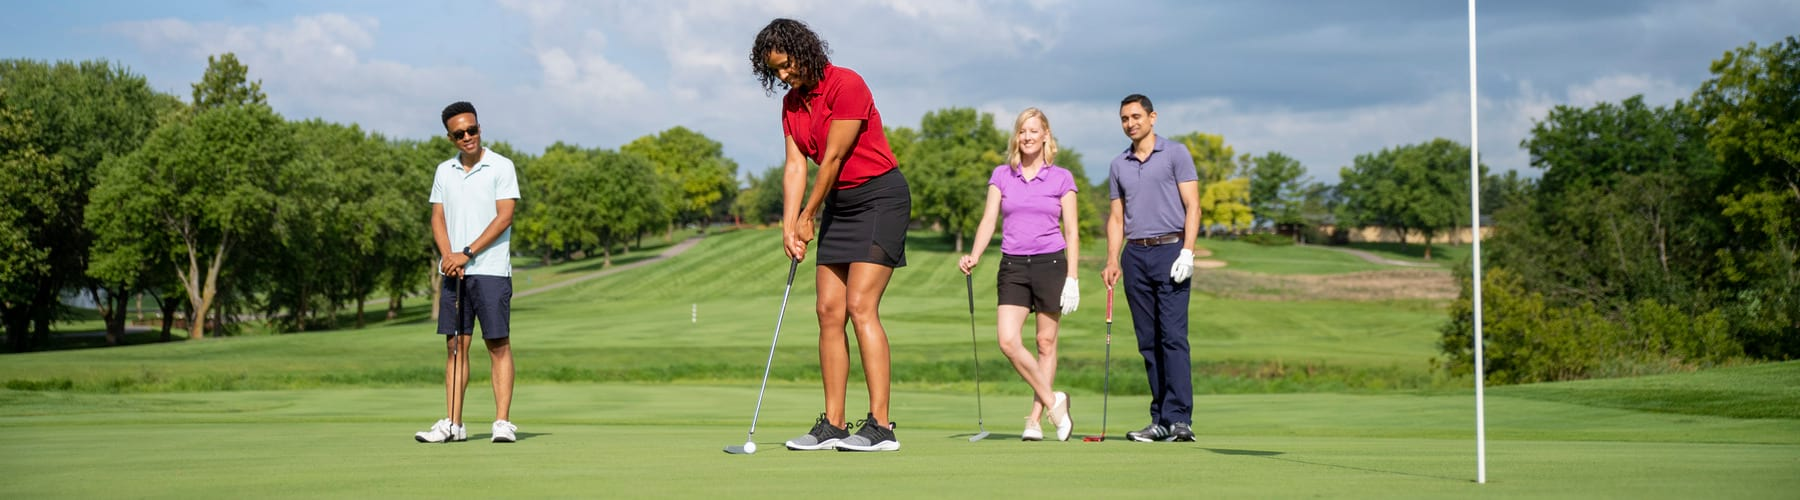 Four golfers on the green